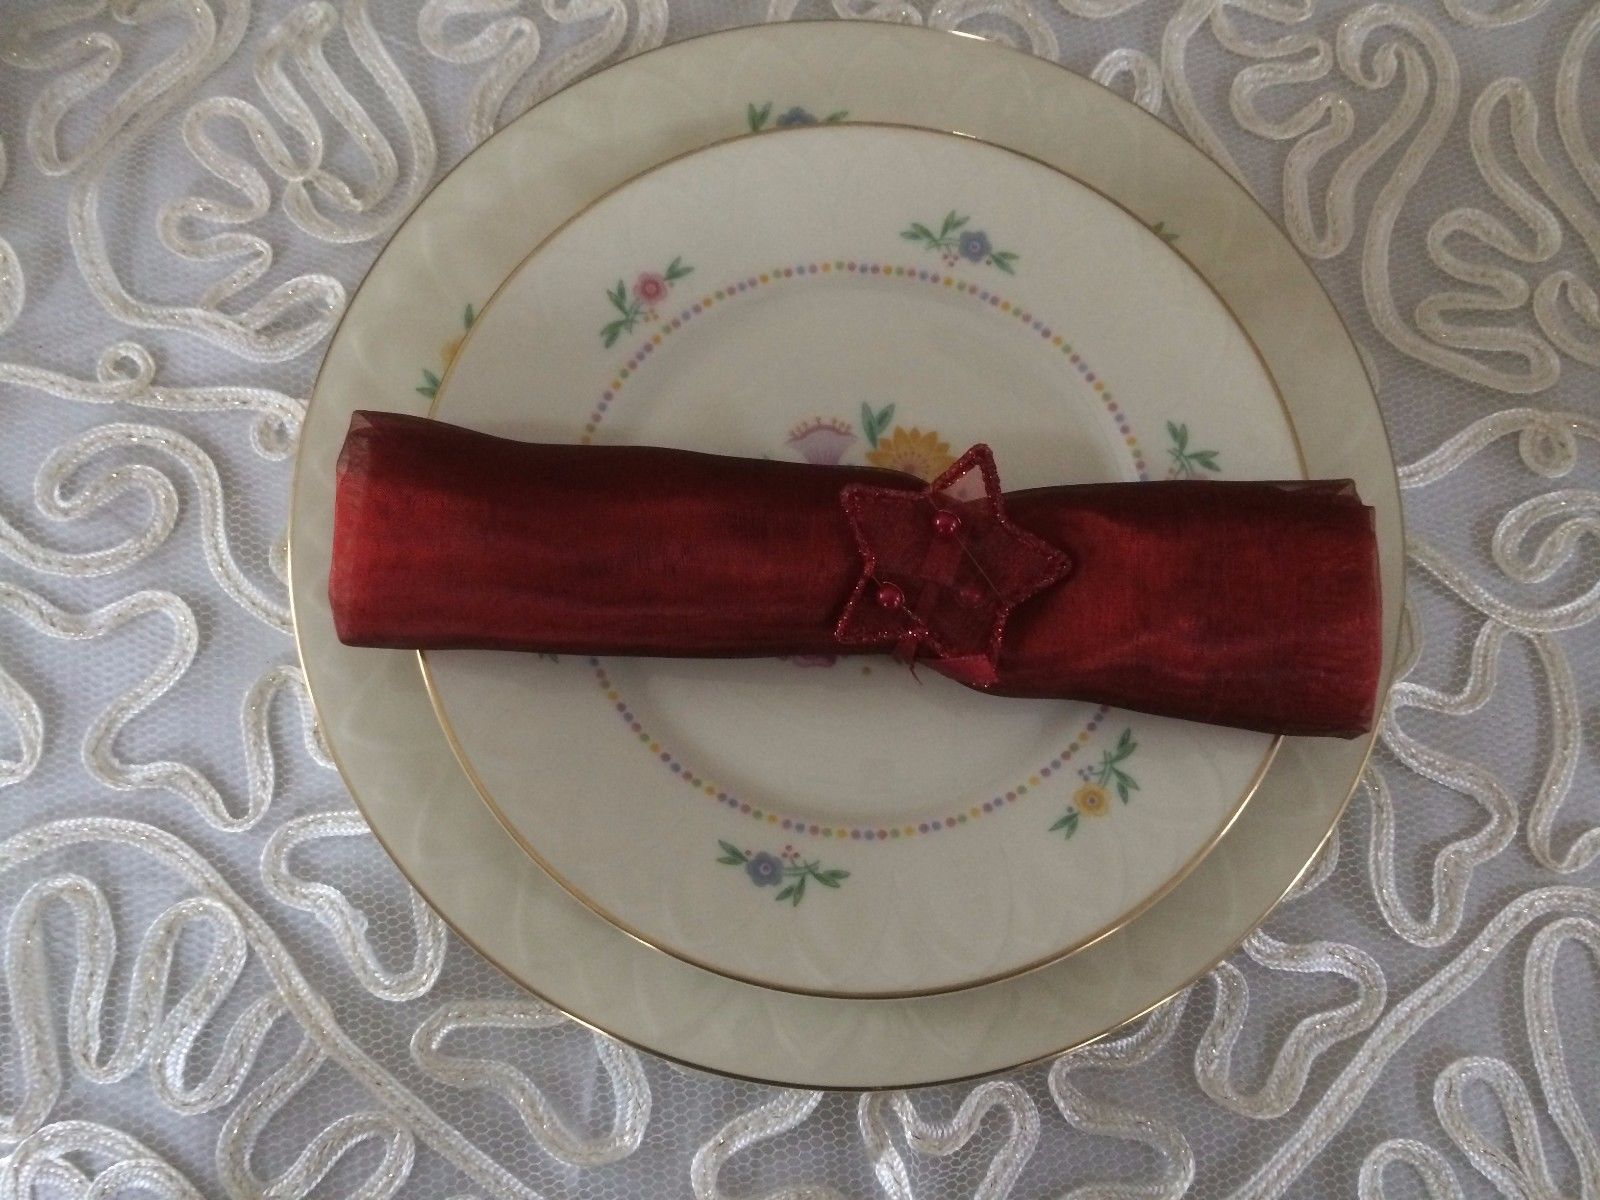 Pier 1 Imports 4 Red Christmas Napkin & Napkin Ring Set in a Box - $19.79